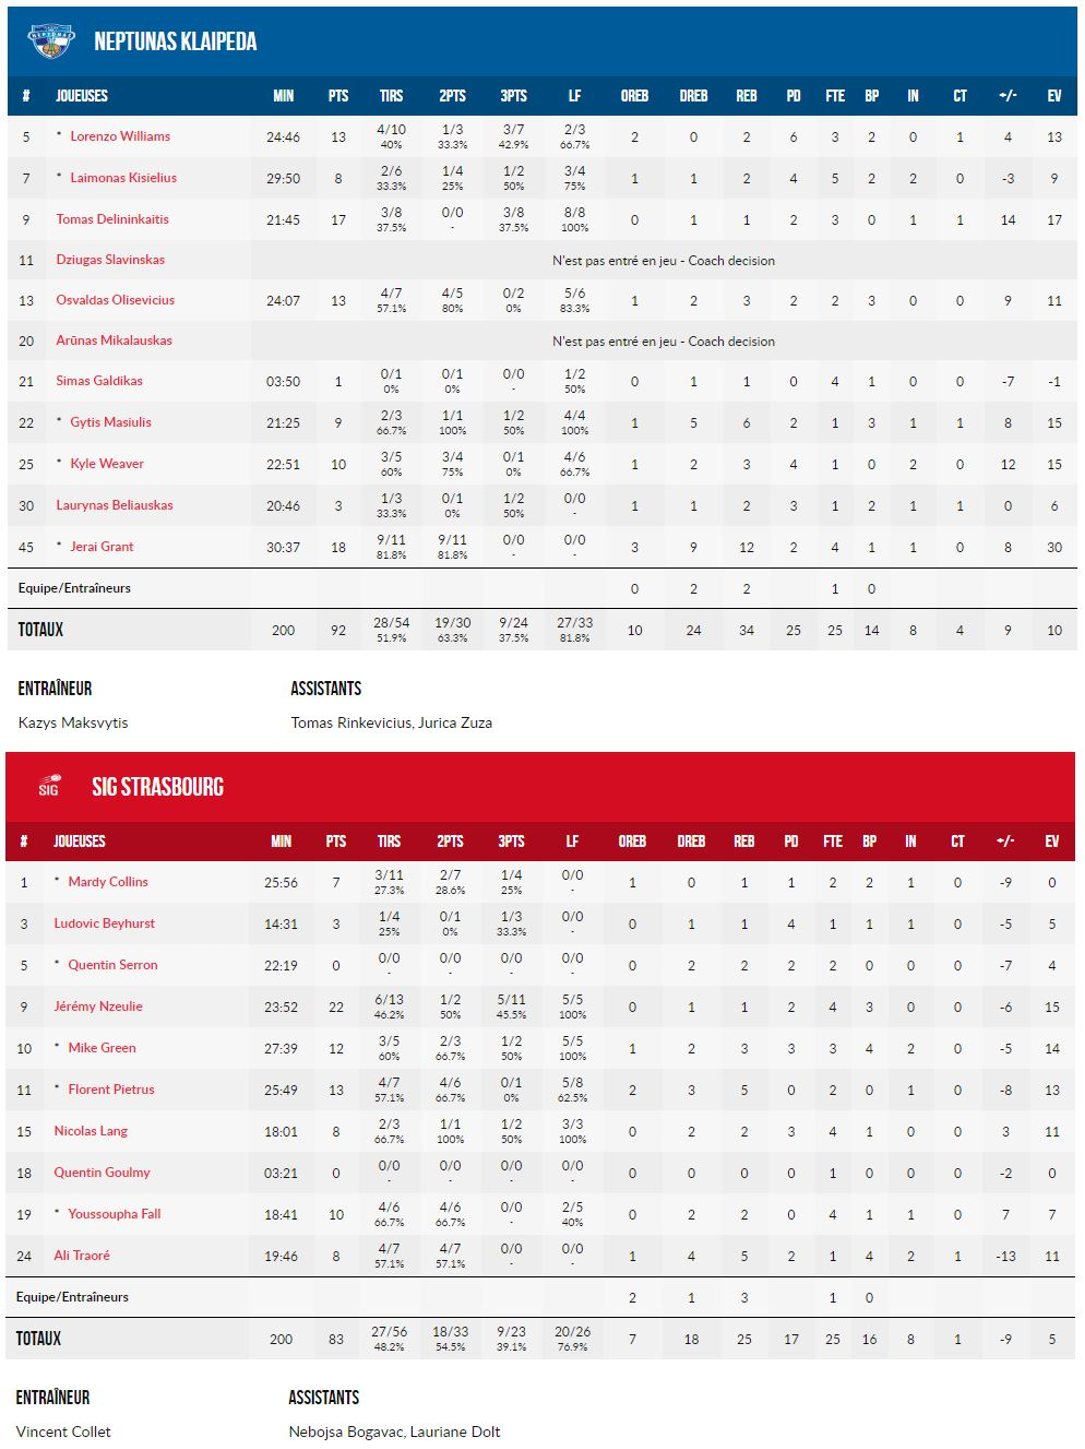 stats_neptunas.png